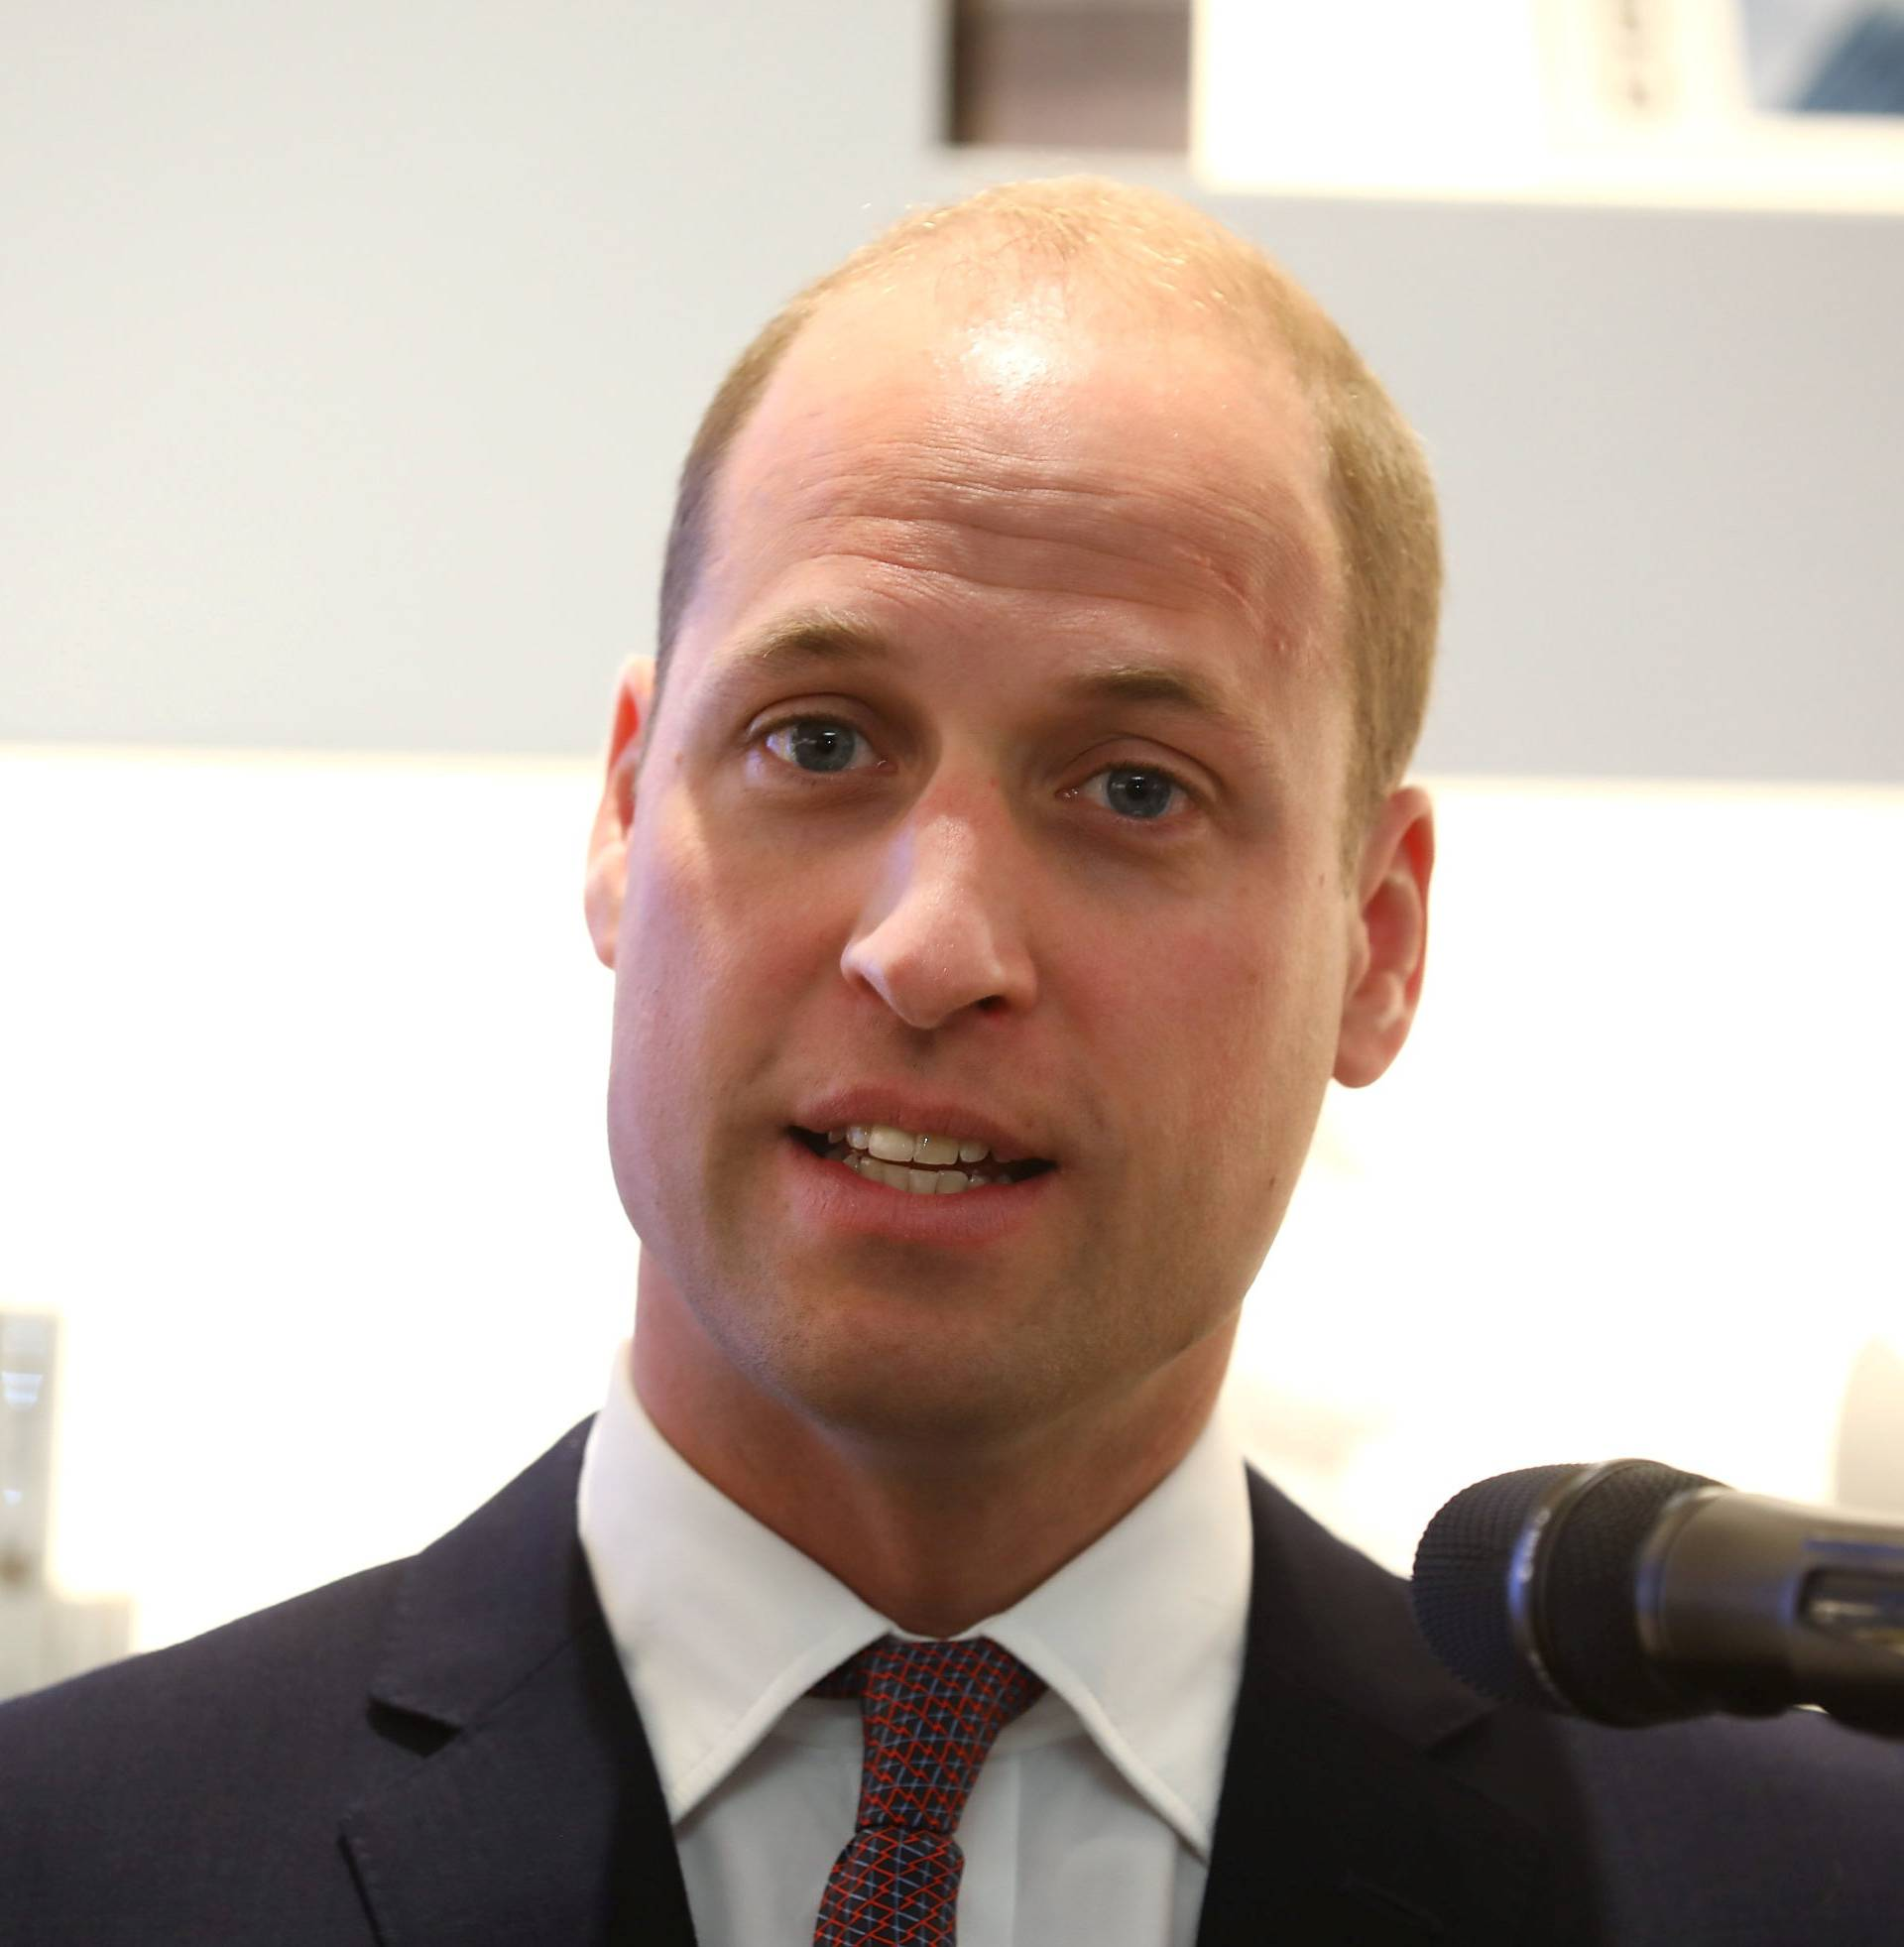 Britain's Prince William makes a speech at the official opening of Japan House in London